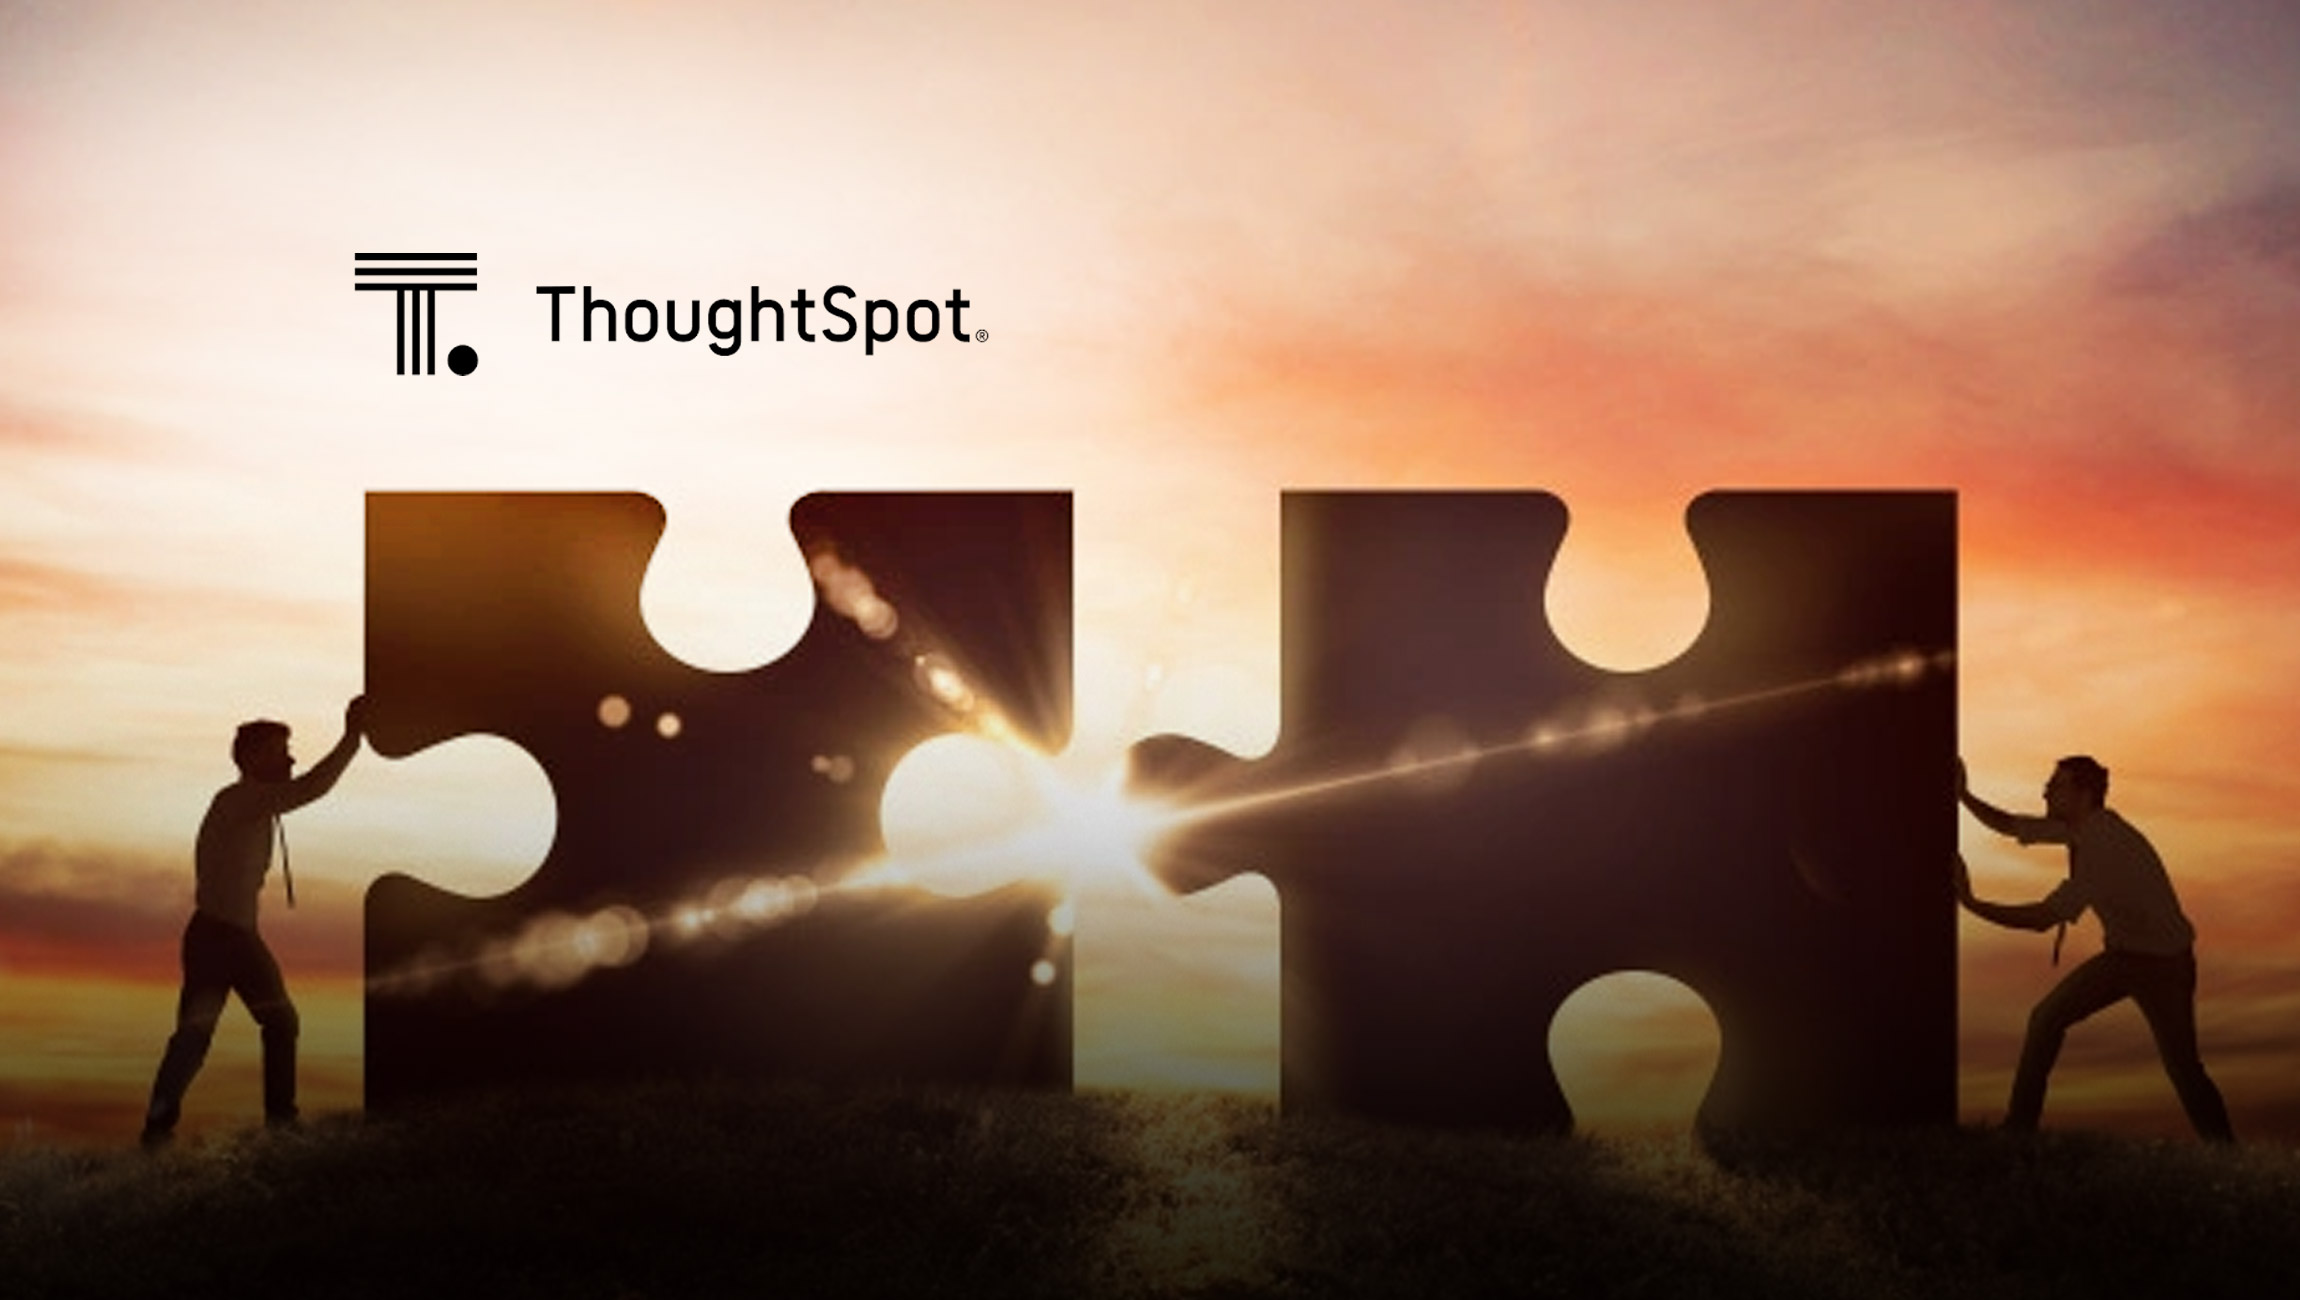 ThoughtSpot Acquires SeekWell to Operationalize Analytics and Push Cloud Data Insights to Business Apps 5